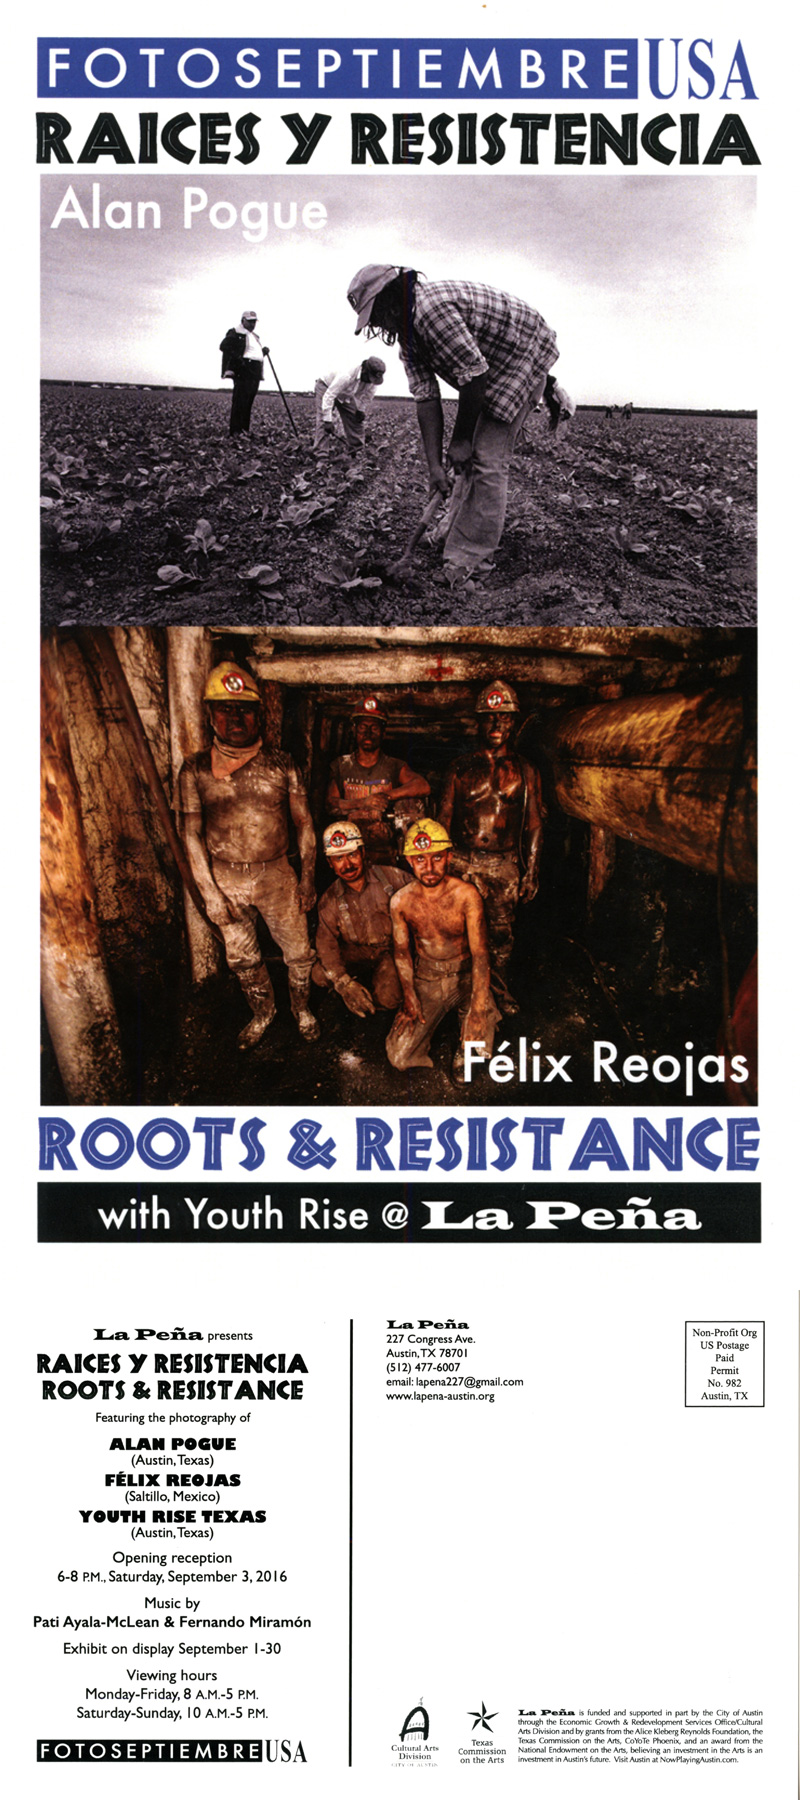 2016-FOTOSEPTIEMBRE-USA_Press-Archives_Raices-Y-Resistencia-Exhibit_La-Peña-Latino-Arts-Organization-Promo-Card